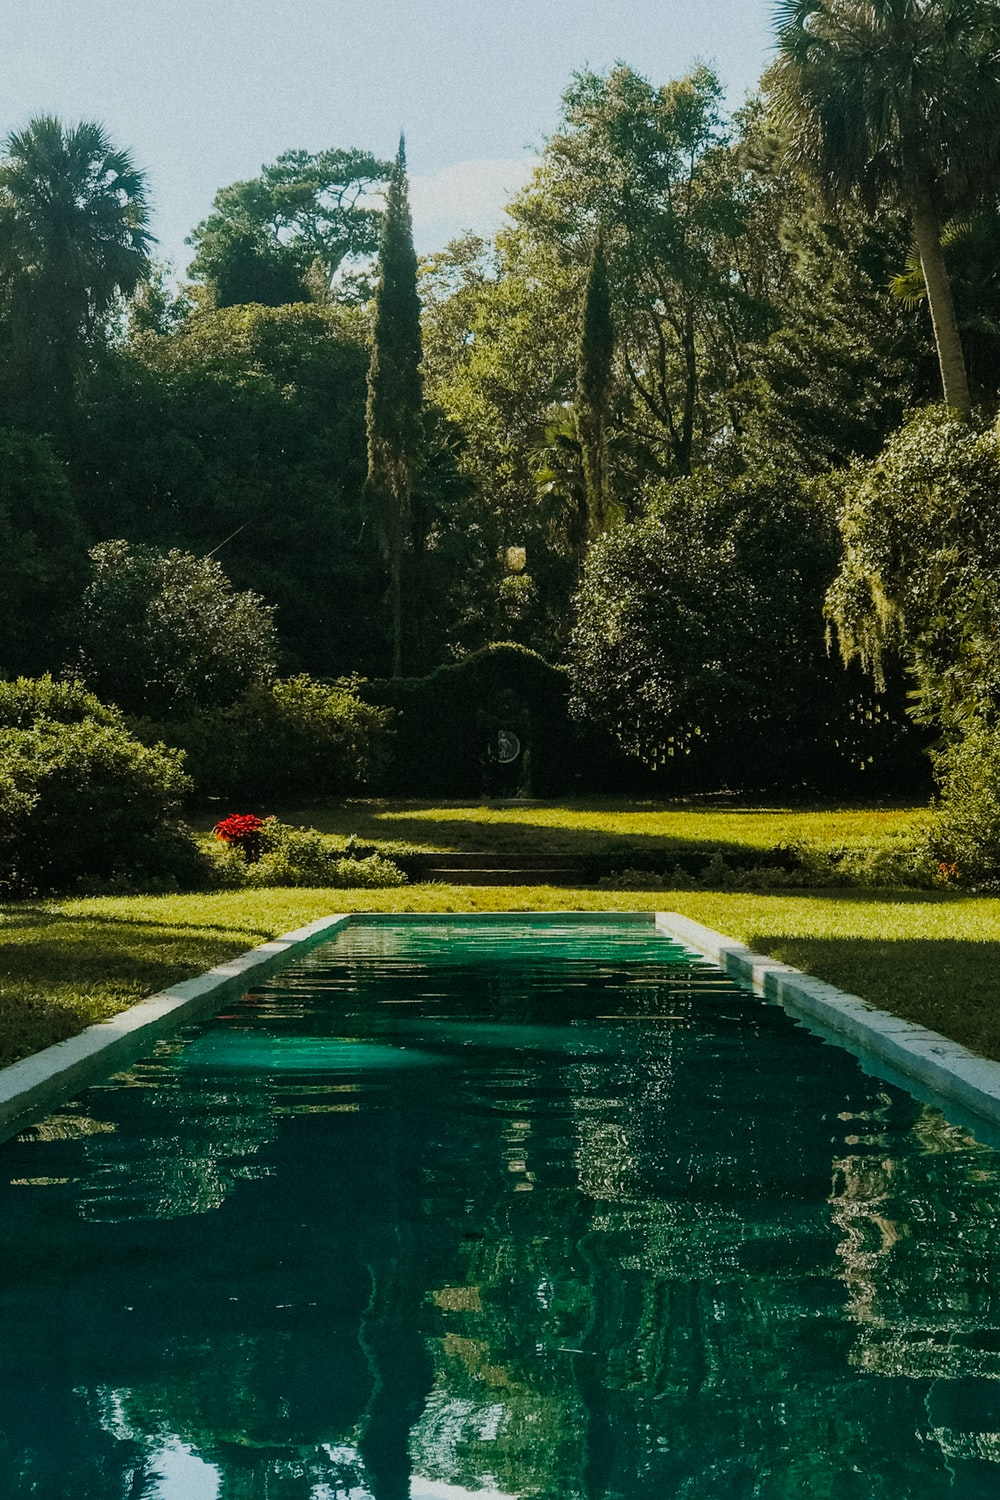 pool near trees and grasses